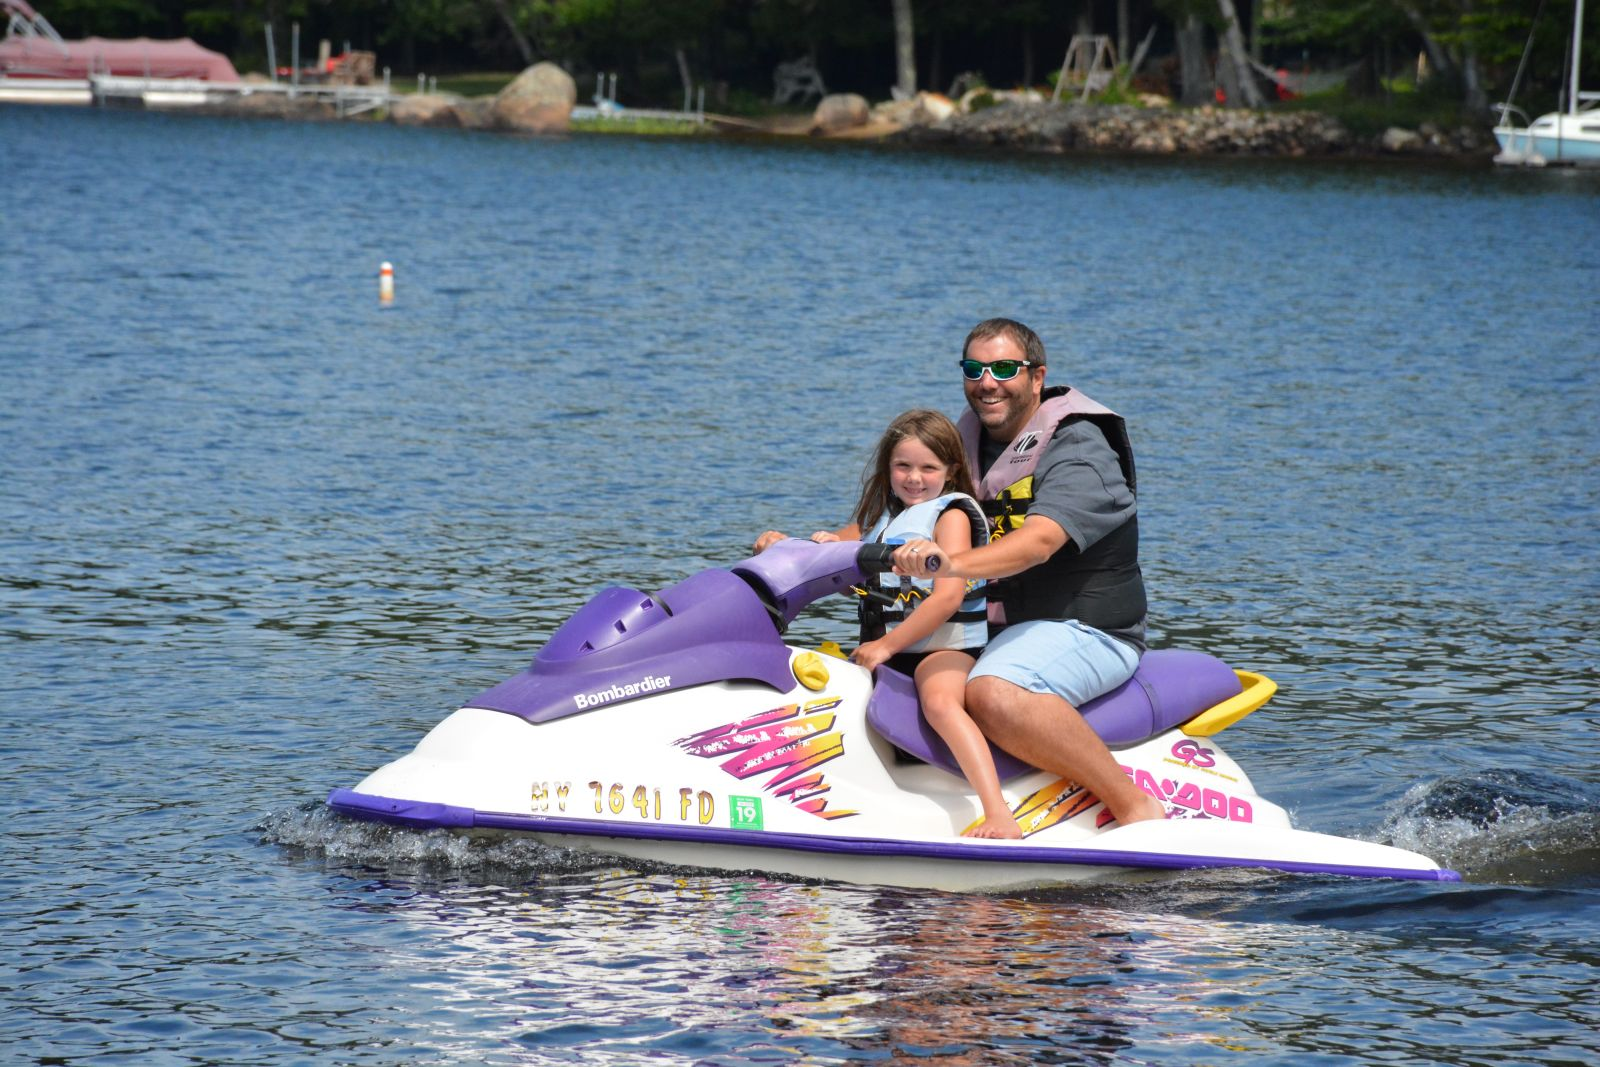 Jerry Scotti, the eldest of Frank and Sue Scotti's children, and his daughter Lucia, take off for a quick spin on the lake.